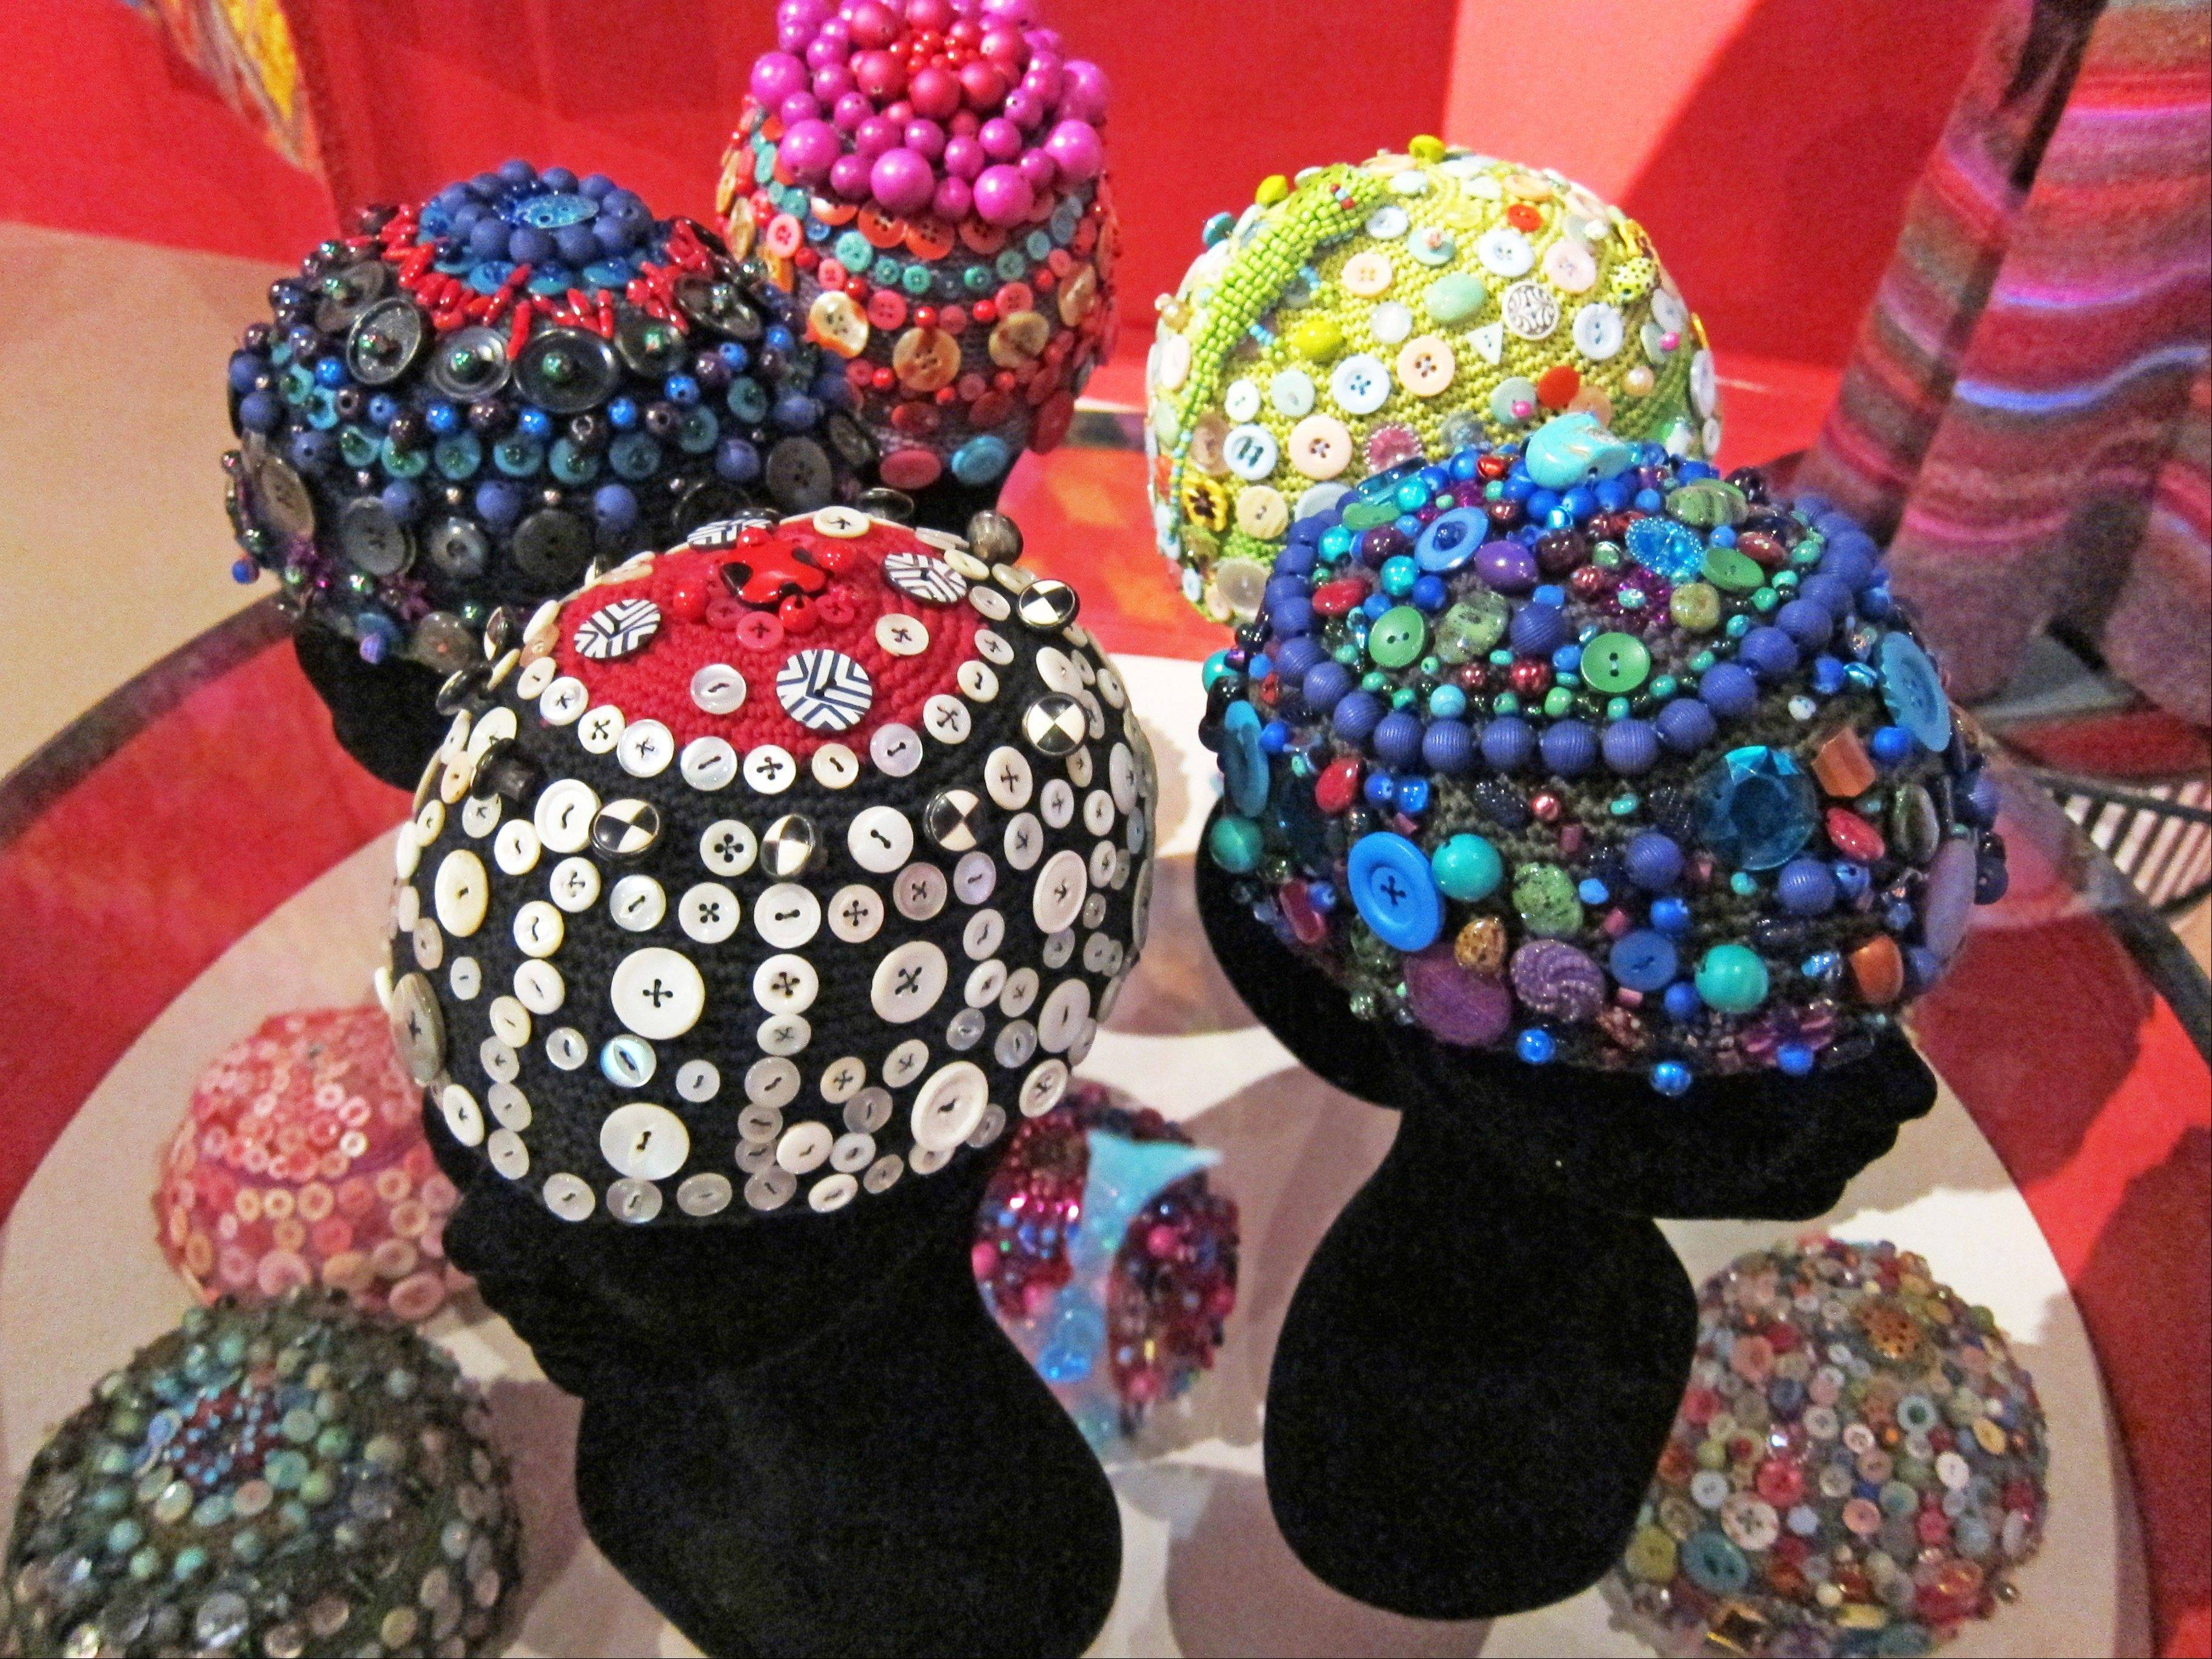 Textile artist Kaffe Fassett�s crocheted skull caps, which are embellished with buttons and beads. Dozens of similar caps appeared in the show �Kaffe Fassett: A Life in Colour� recently at the Fashion and Textile Museum in London.